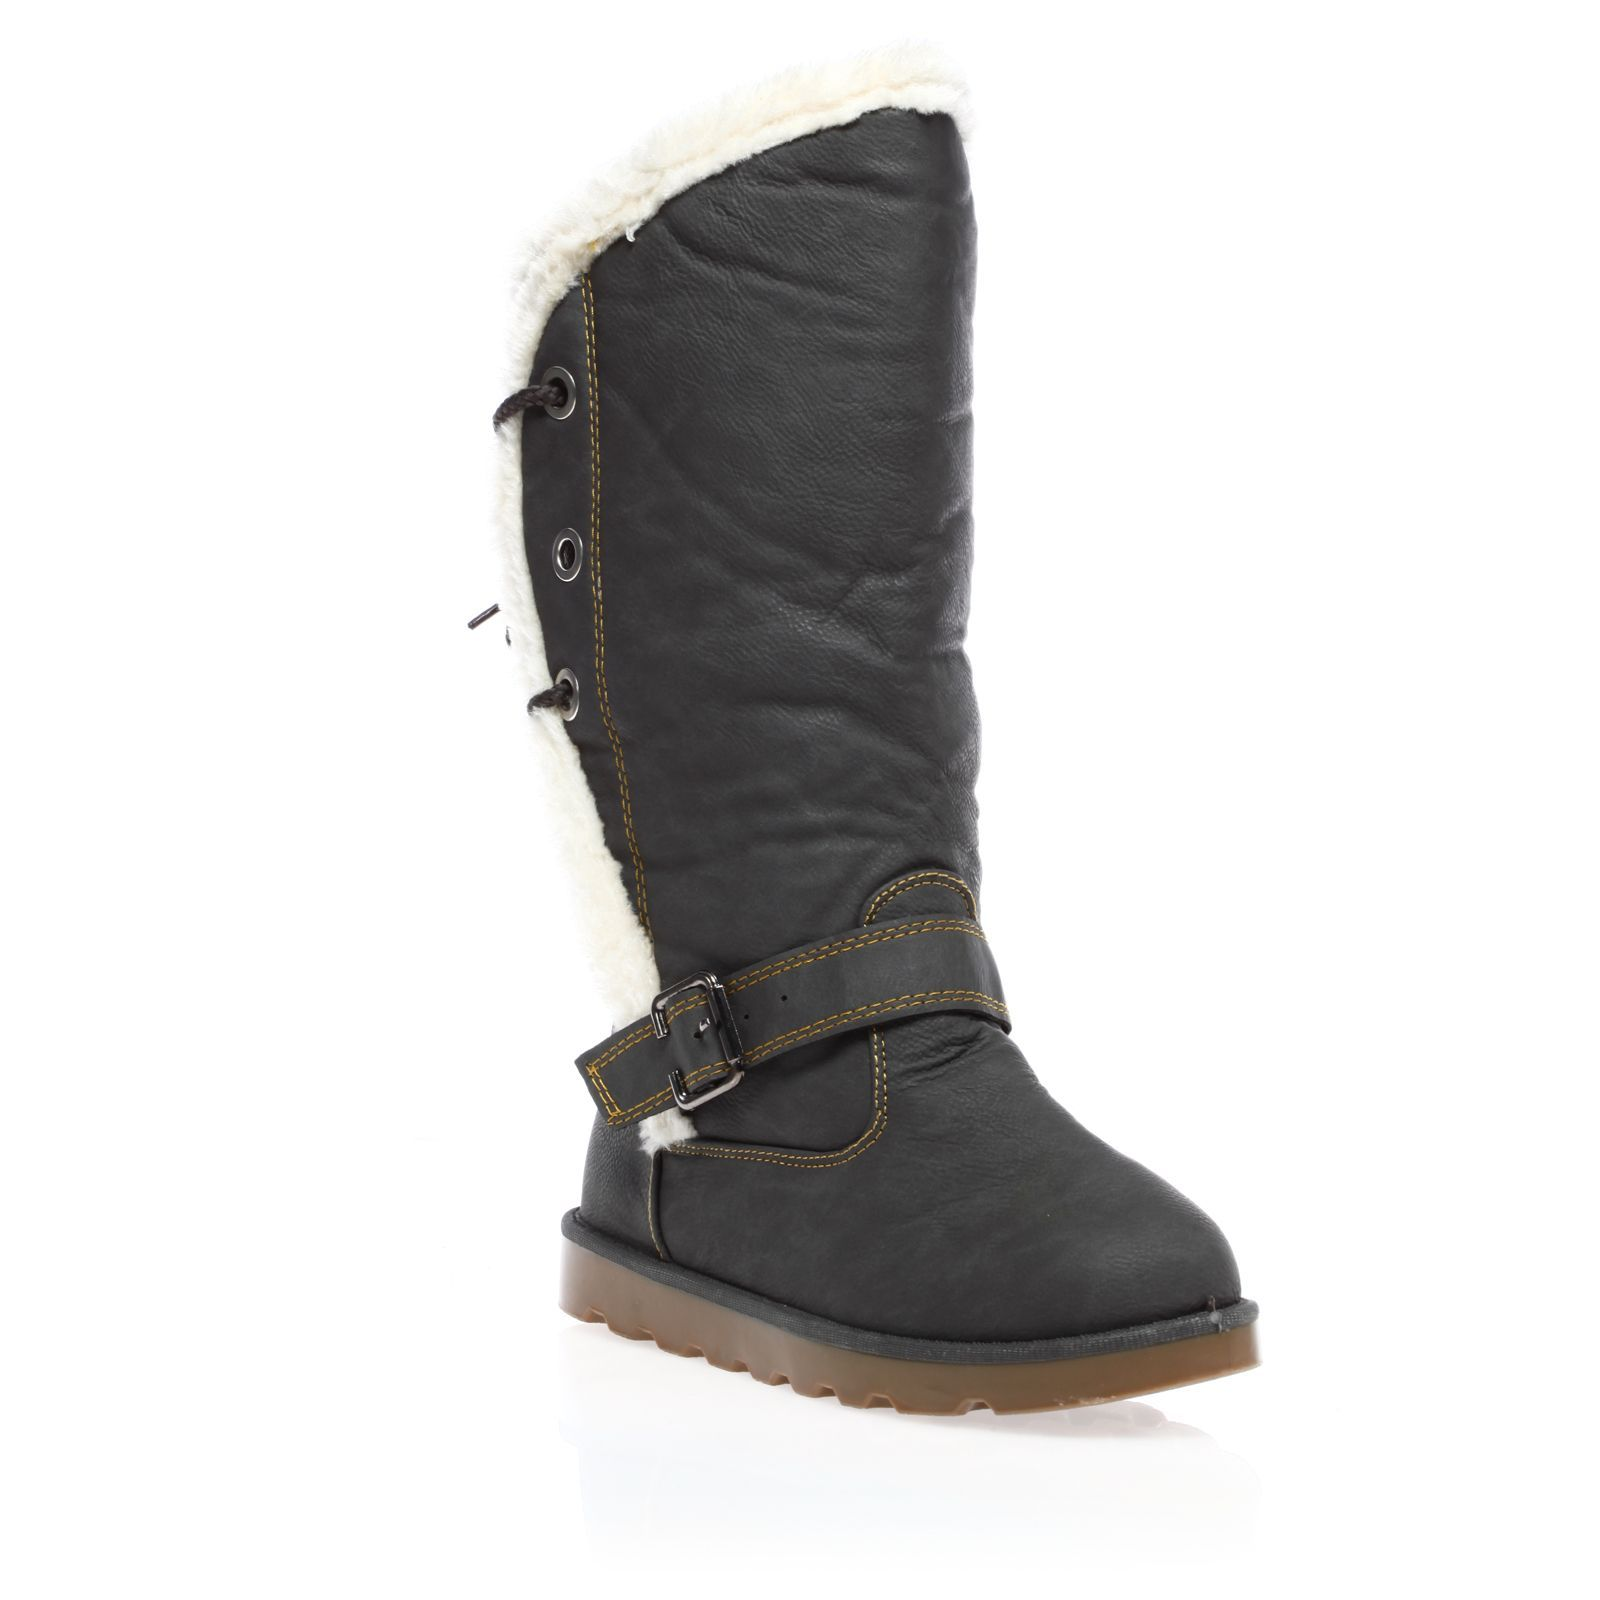 1001 Shoes bottes fourr�es grises